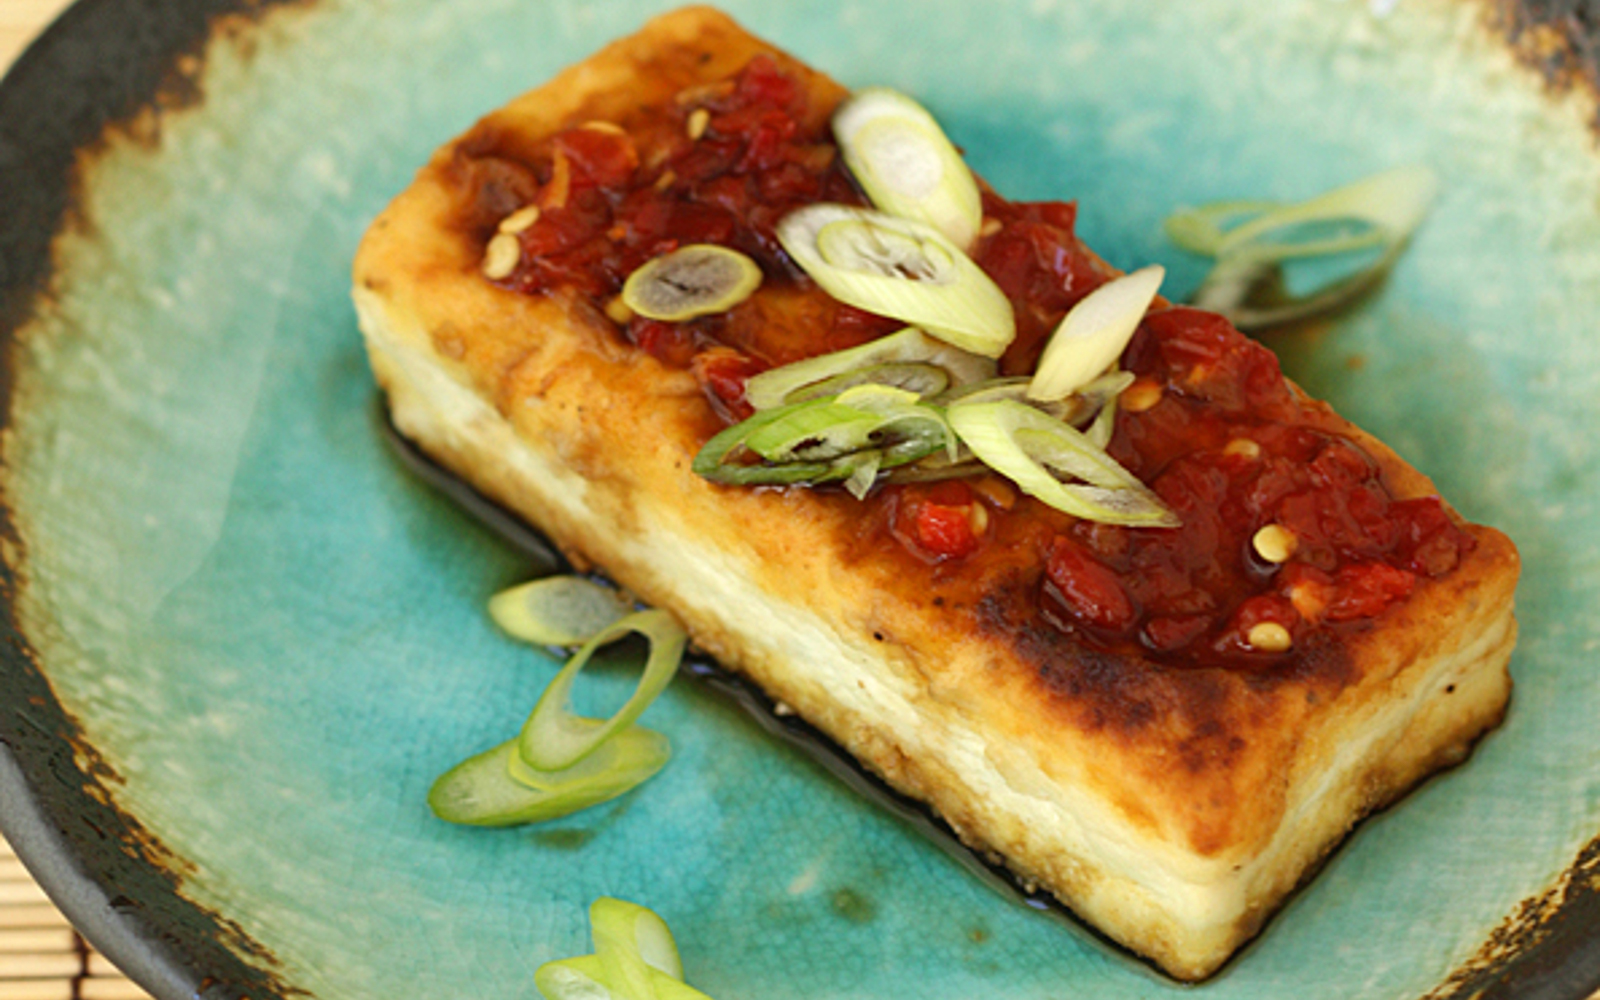 Vegan Tofu Steak with green onions